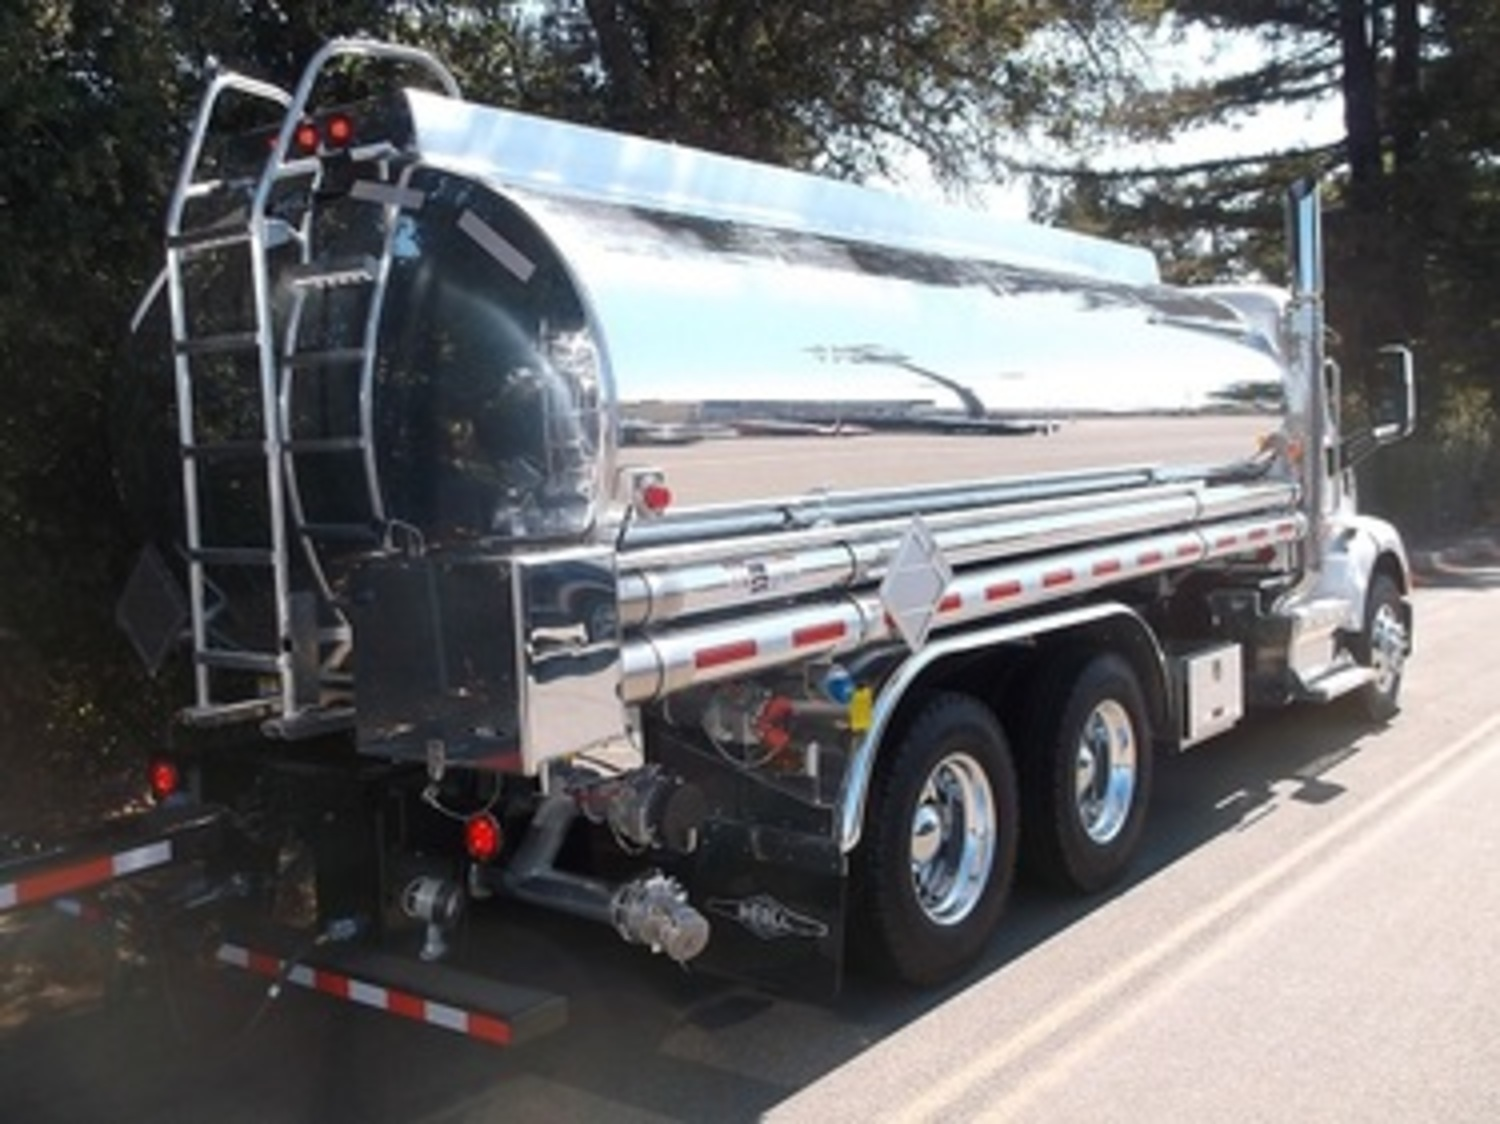 2020 PETERBILT / BEALL 389 4500 GAL  3-AXLE TANK TRUCK AND